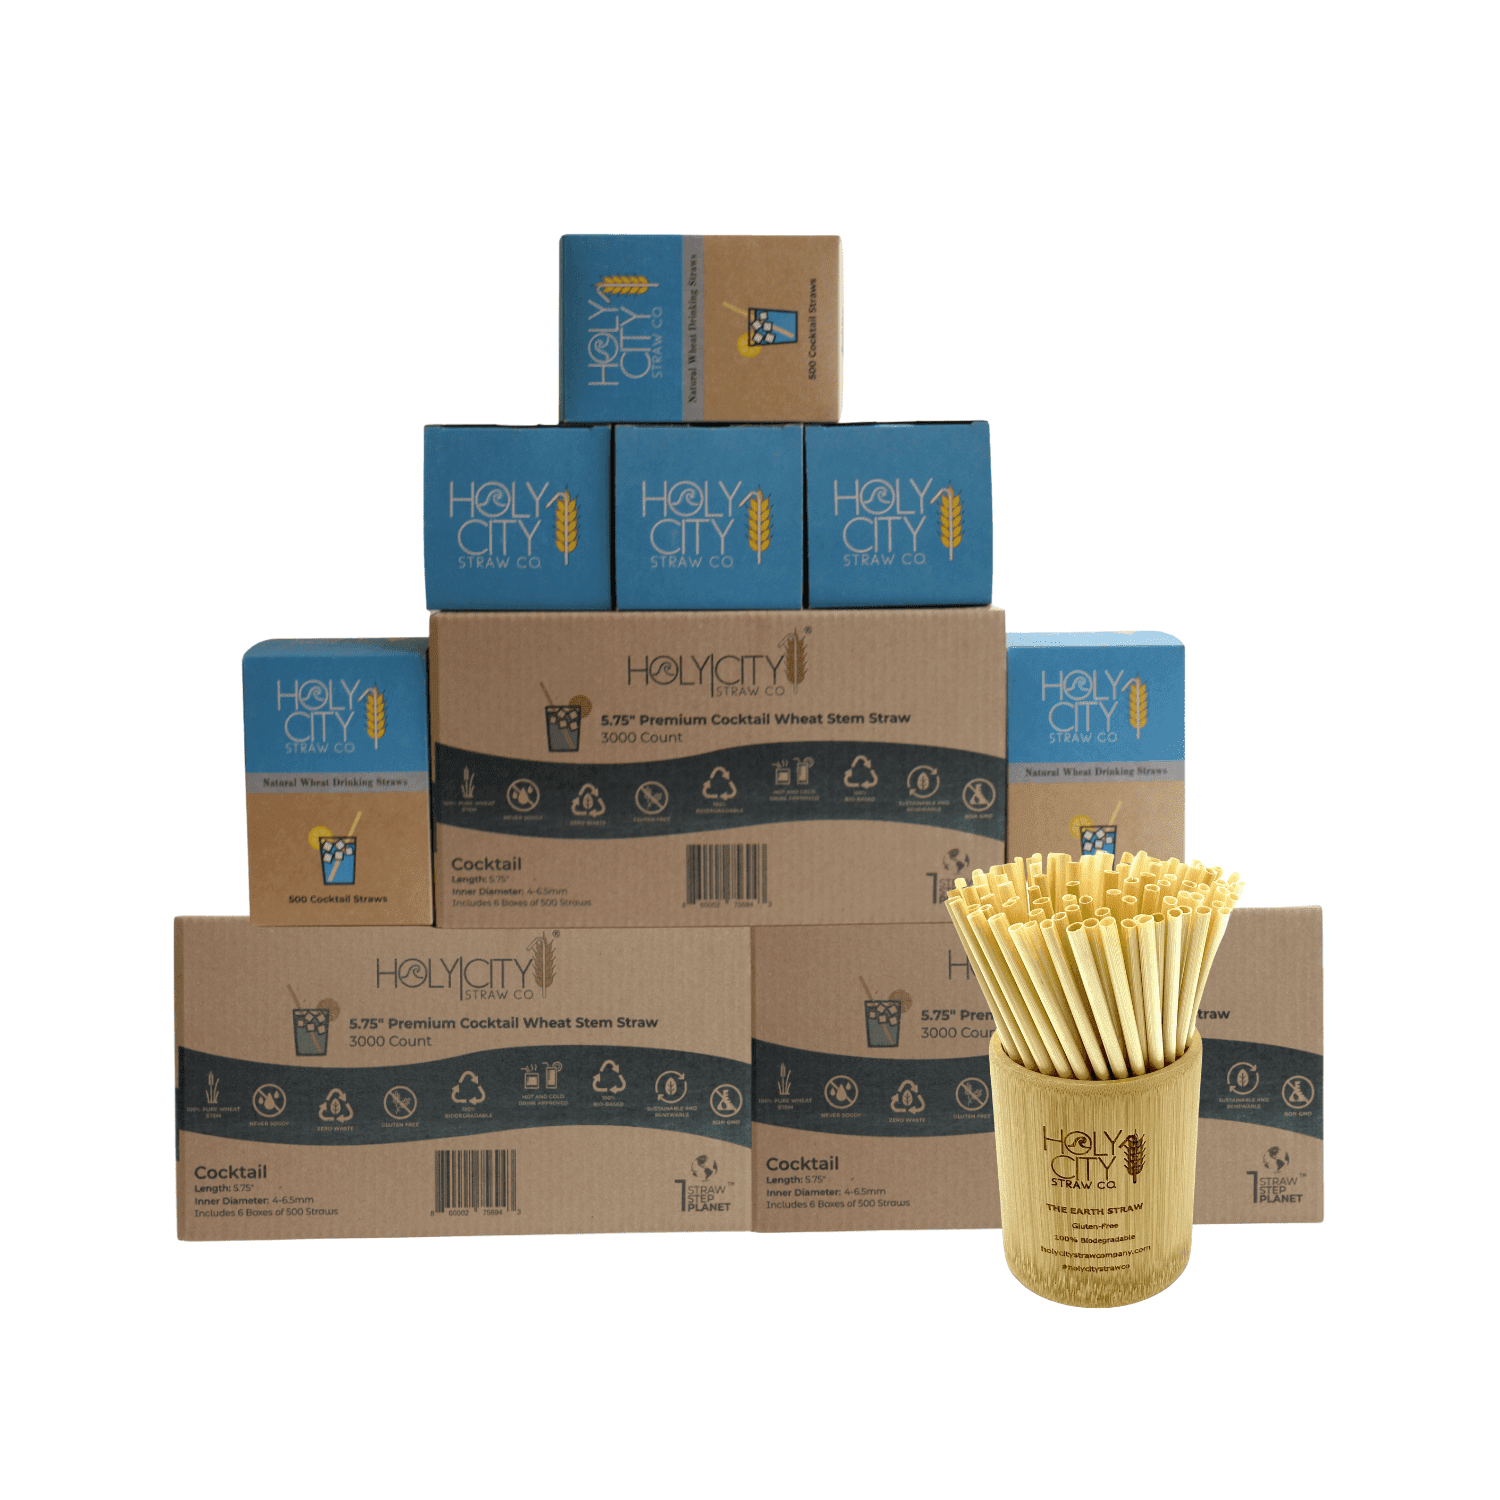 9000 count super case containing 18 boxes of 500 count boxes of Holy City Cocktail Wheat Straws